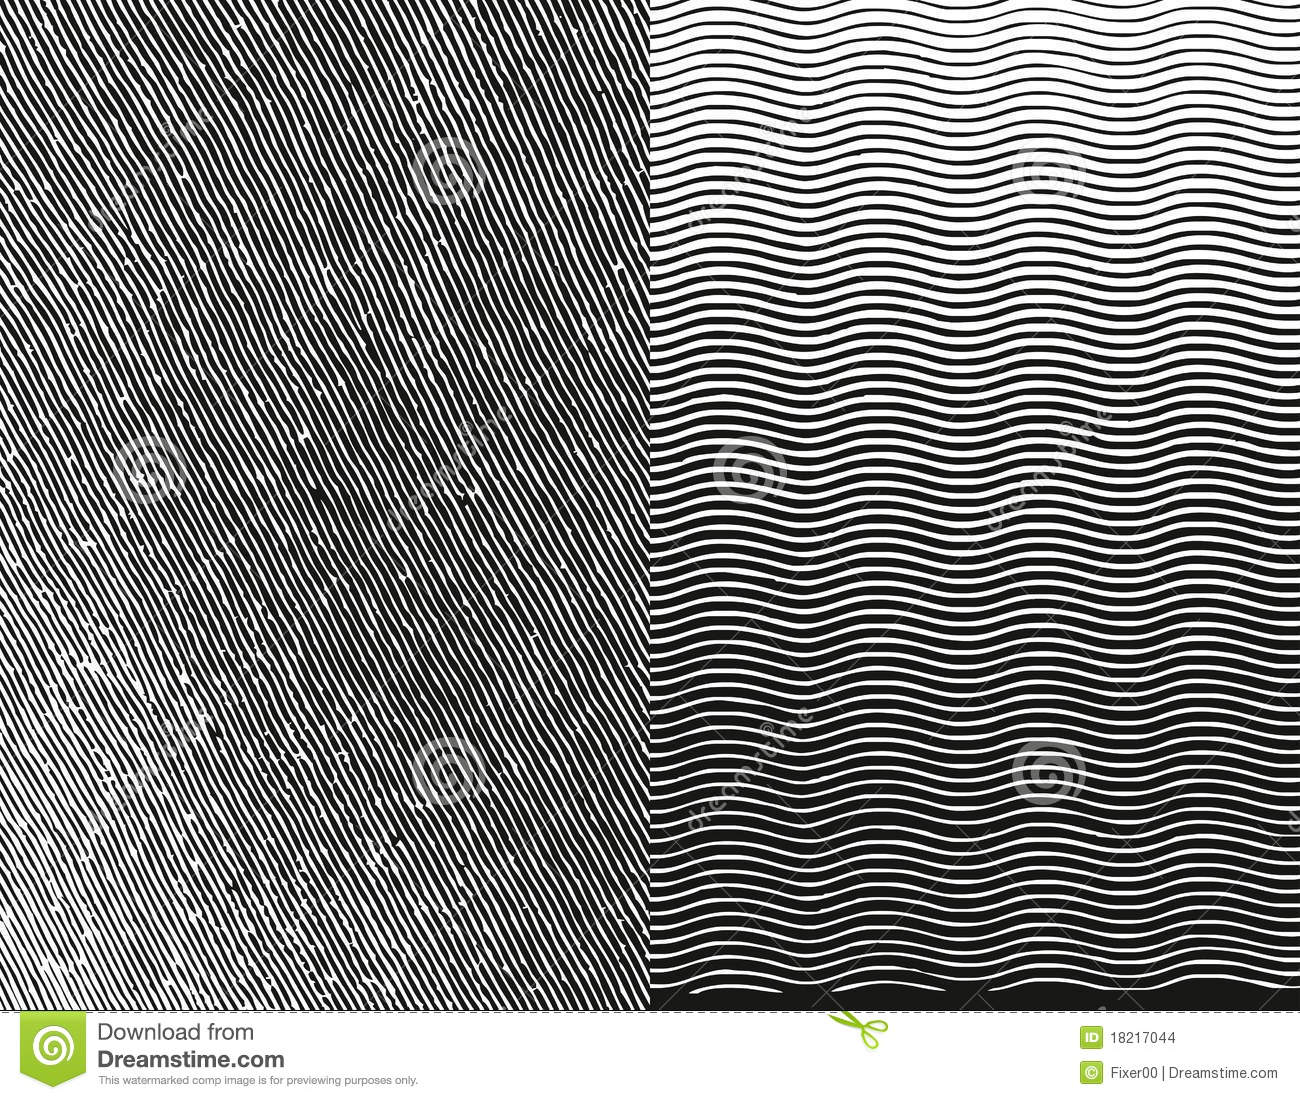 Line Texture Illustrator : Engraving texture vector illustration stock